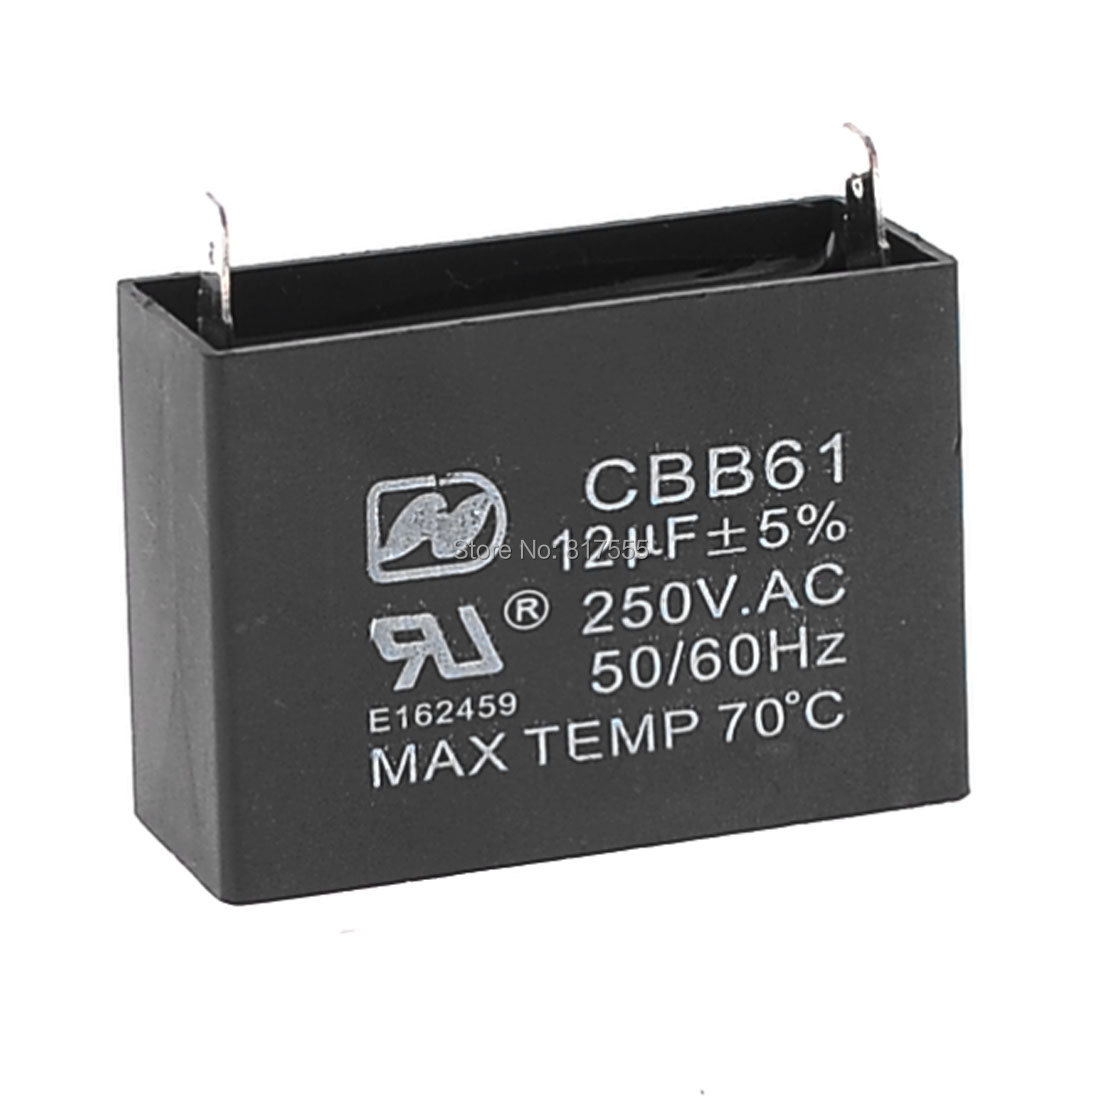 Bringing Reliable Touch Sensor Technology To Handheld Mobile Devices also Motor Starting Electrolytic Capacitor further 272022325258 as well Variable capacitor CBM 444HF 4cab5 together with 8UF Pump Capacitor CBB60 4922785. on polypropylene capacitor